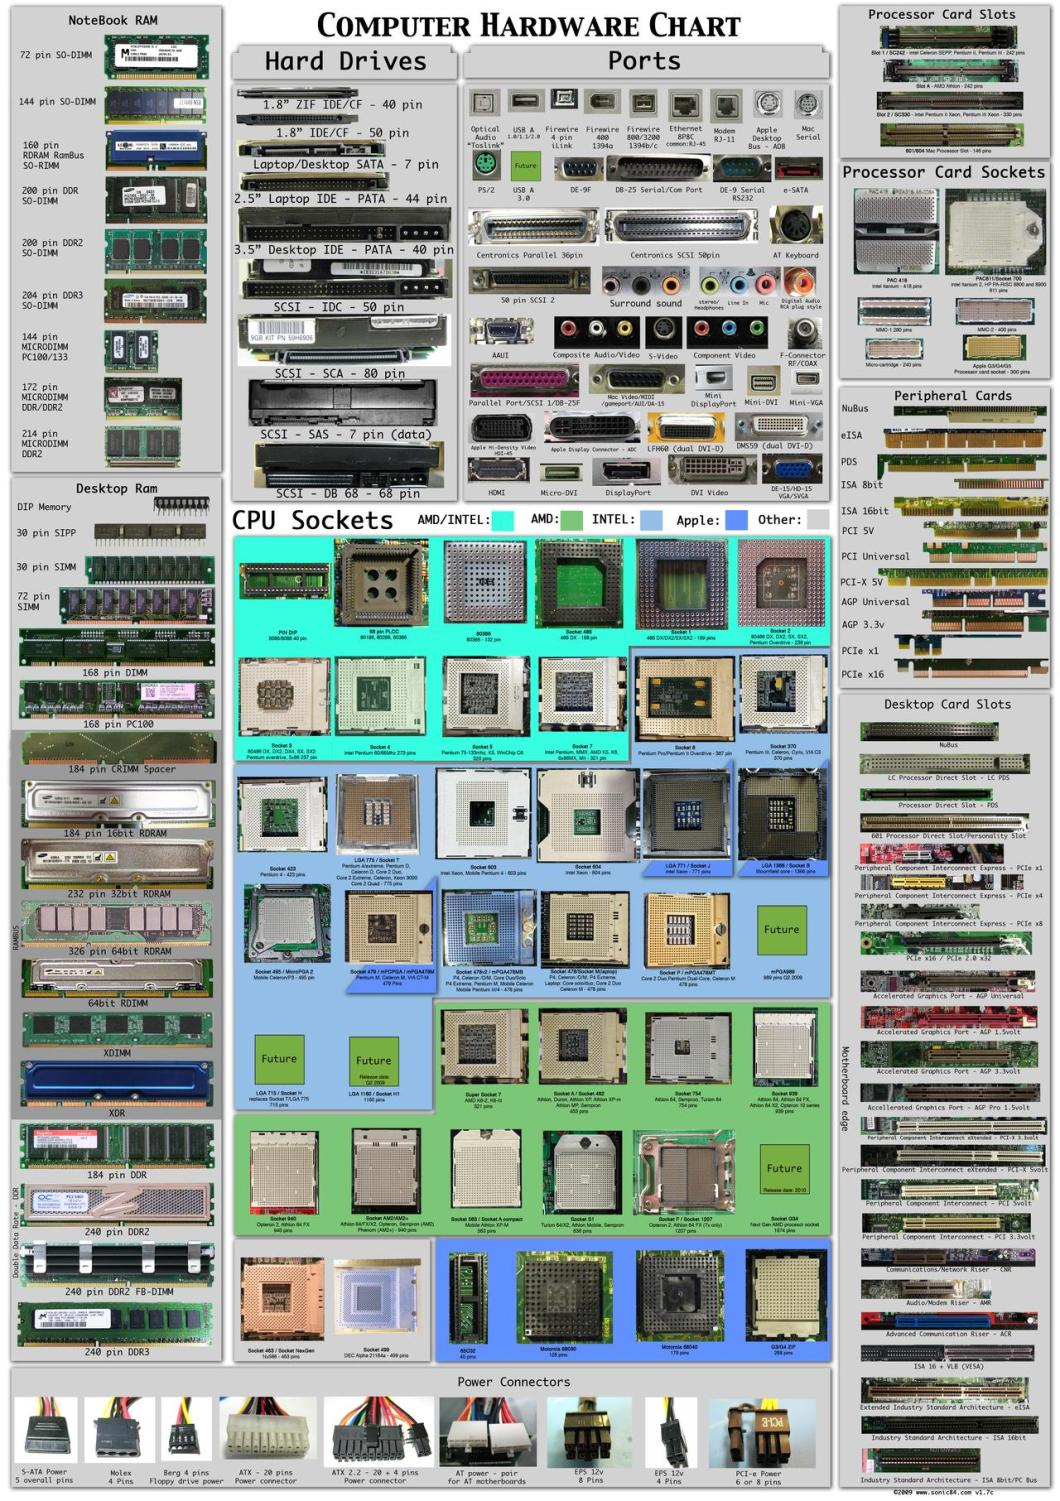 If You're Building A PC This Chart Is All You Need